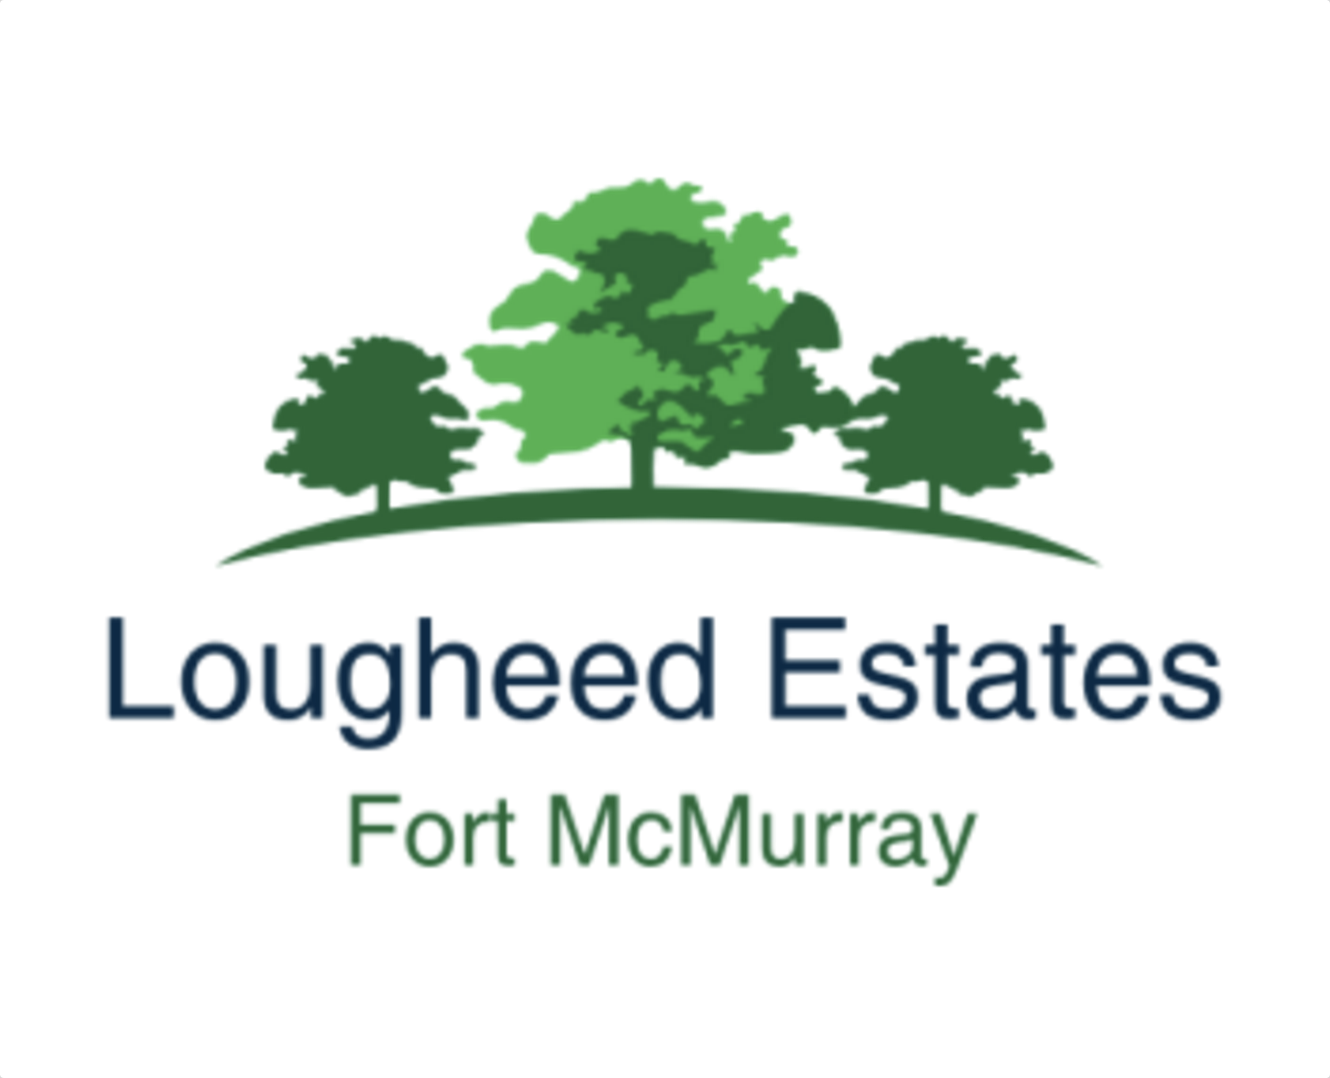 Lougheed Estates Fort McMurray